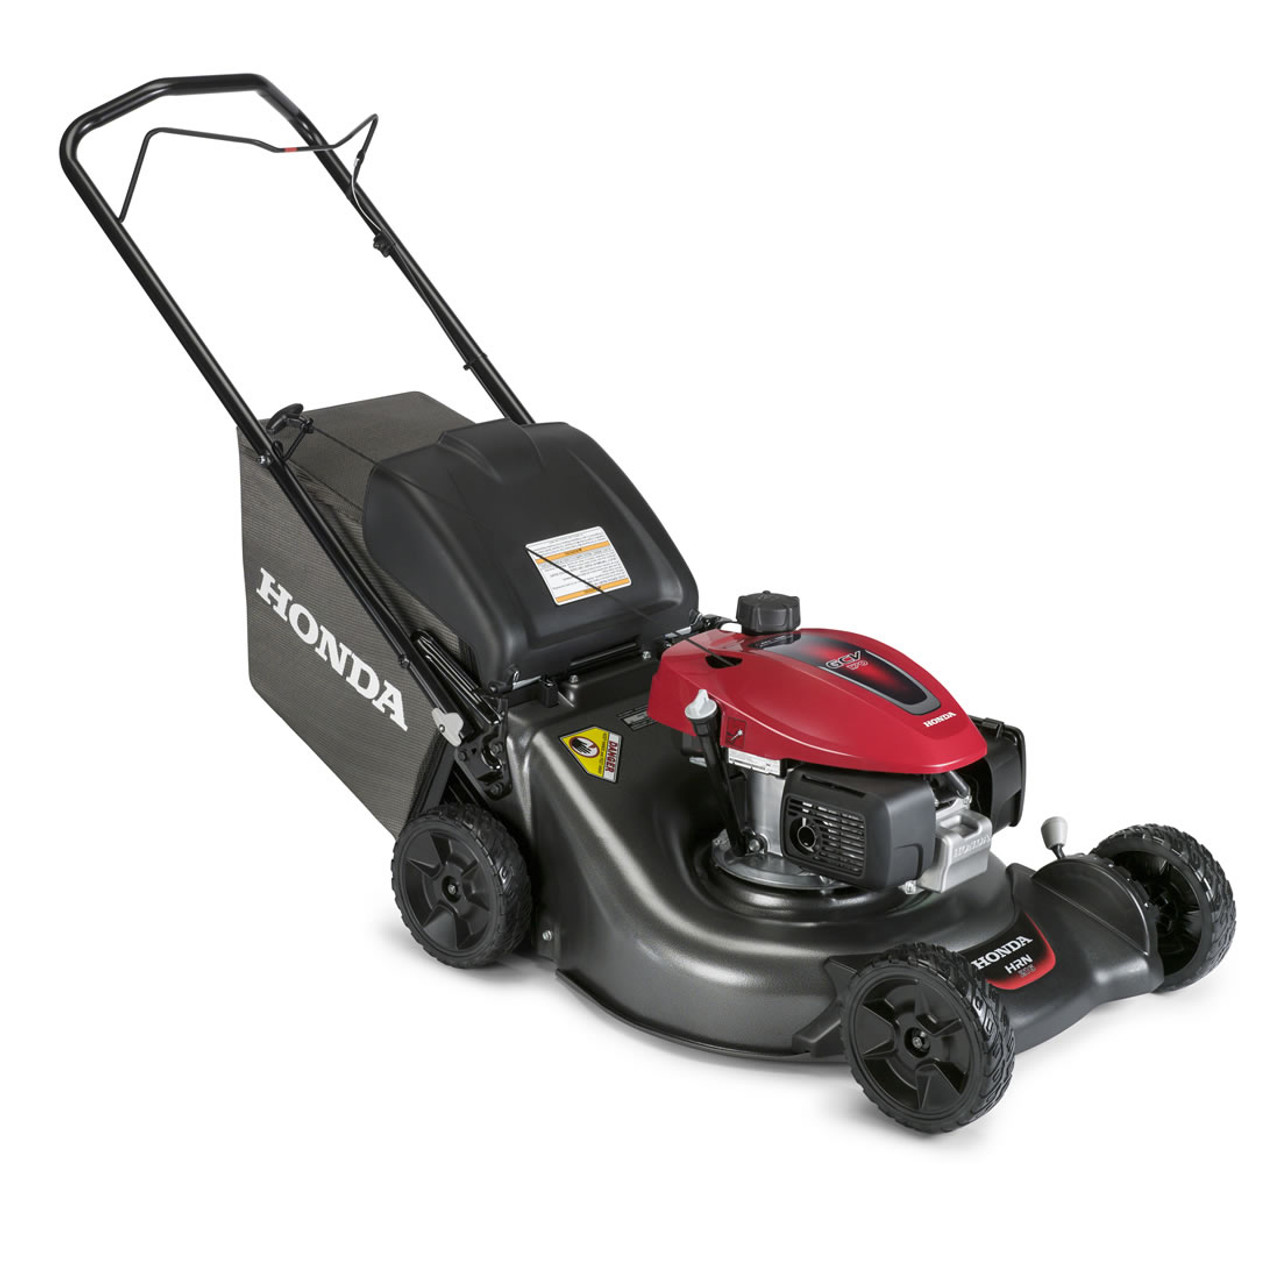 "Honda HRN216PKA 21"" Walk Behind Push Lawn Mower w/ GCV170 Engine Image"